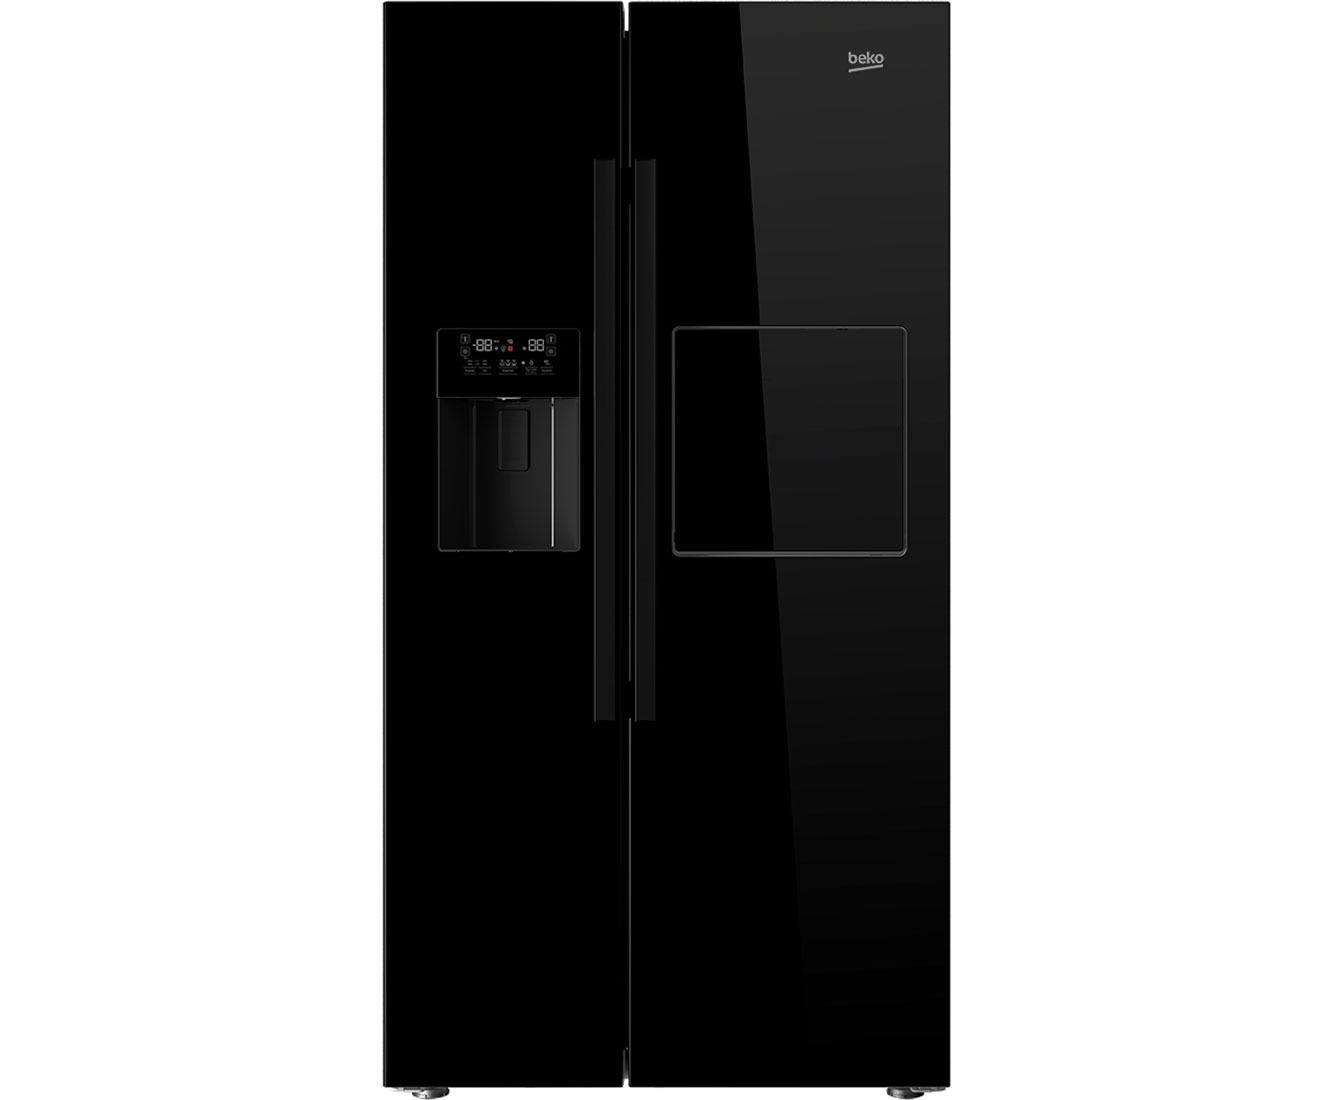 beko gn 162430 p side by side a 182 cm h he 370 kwh jahr 368 liter k hlteil 176. Black Bedroom Furniture Sets. Home Design Ideas